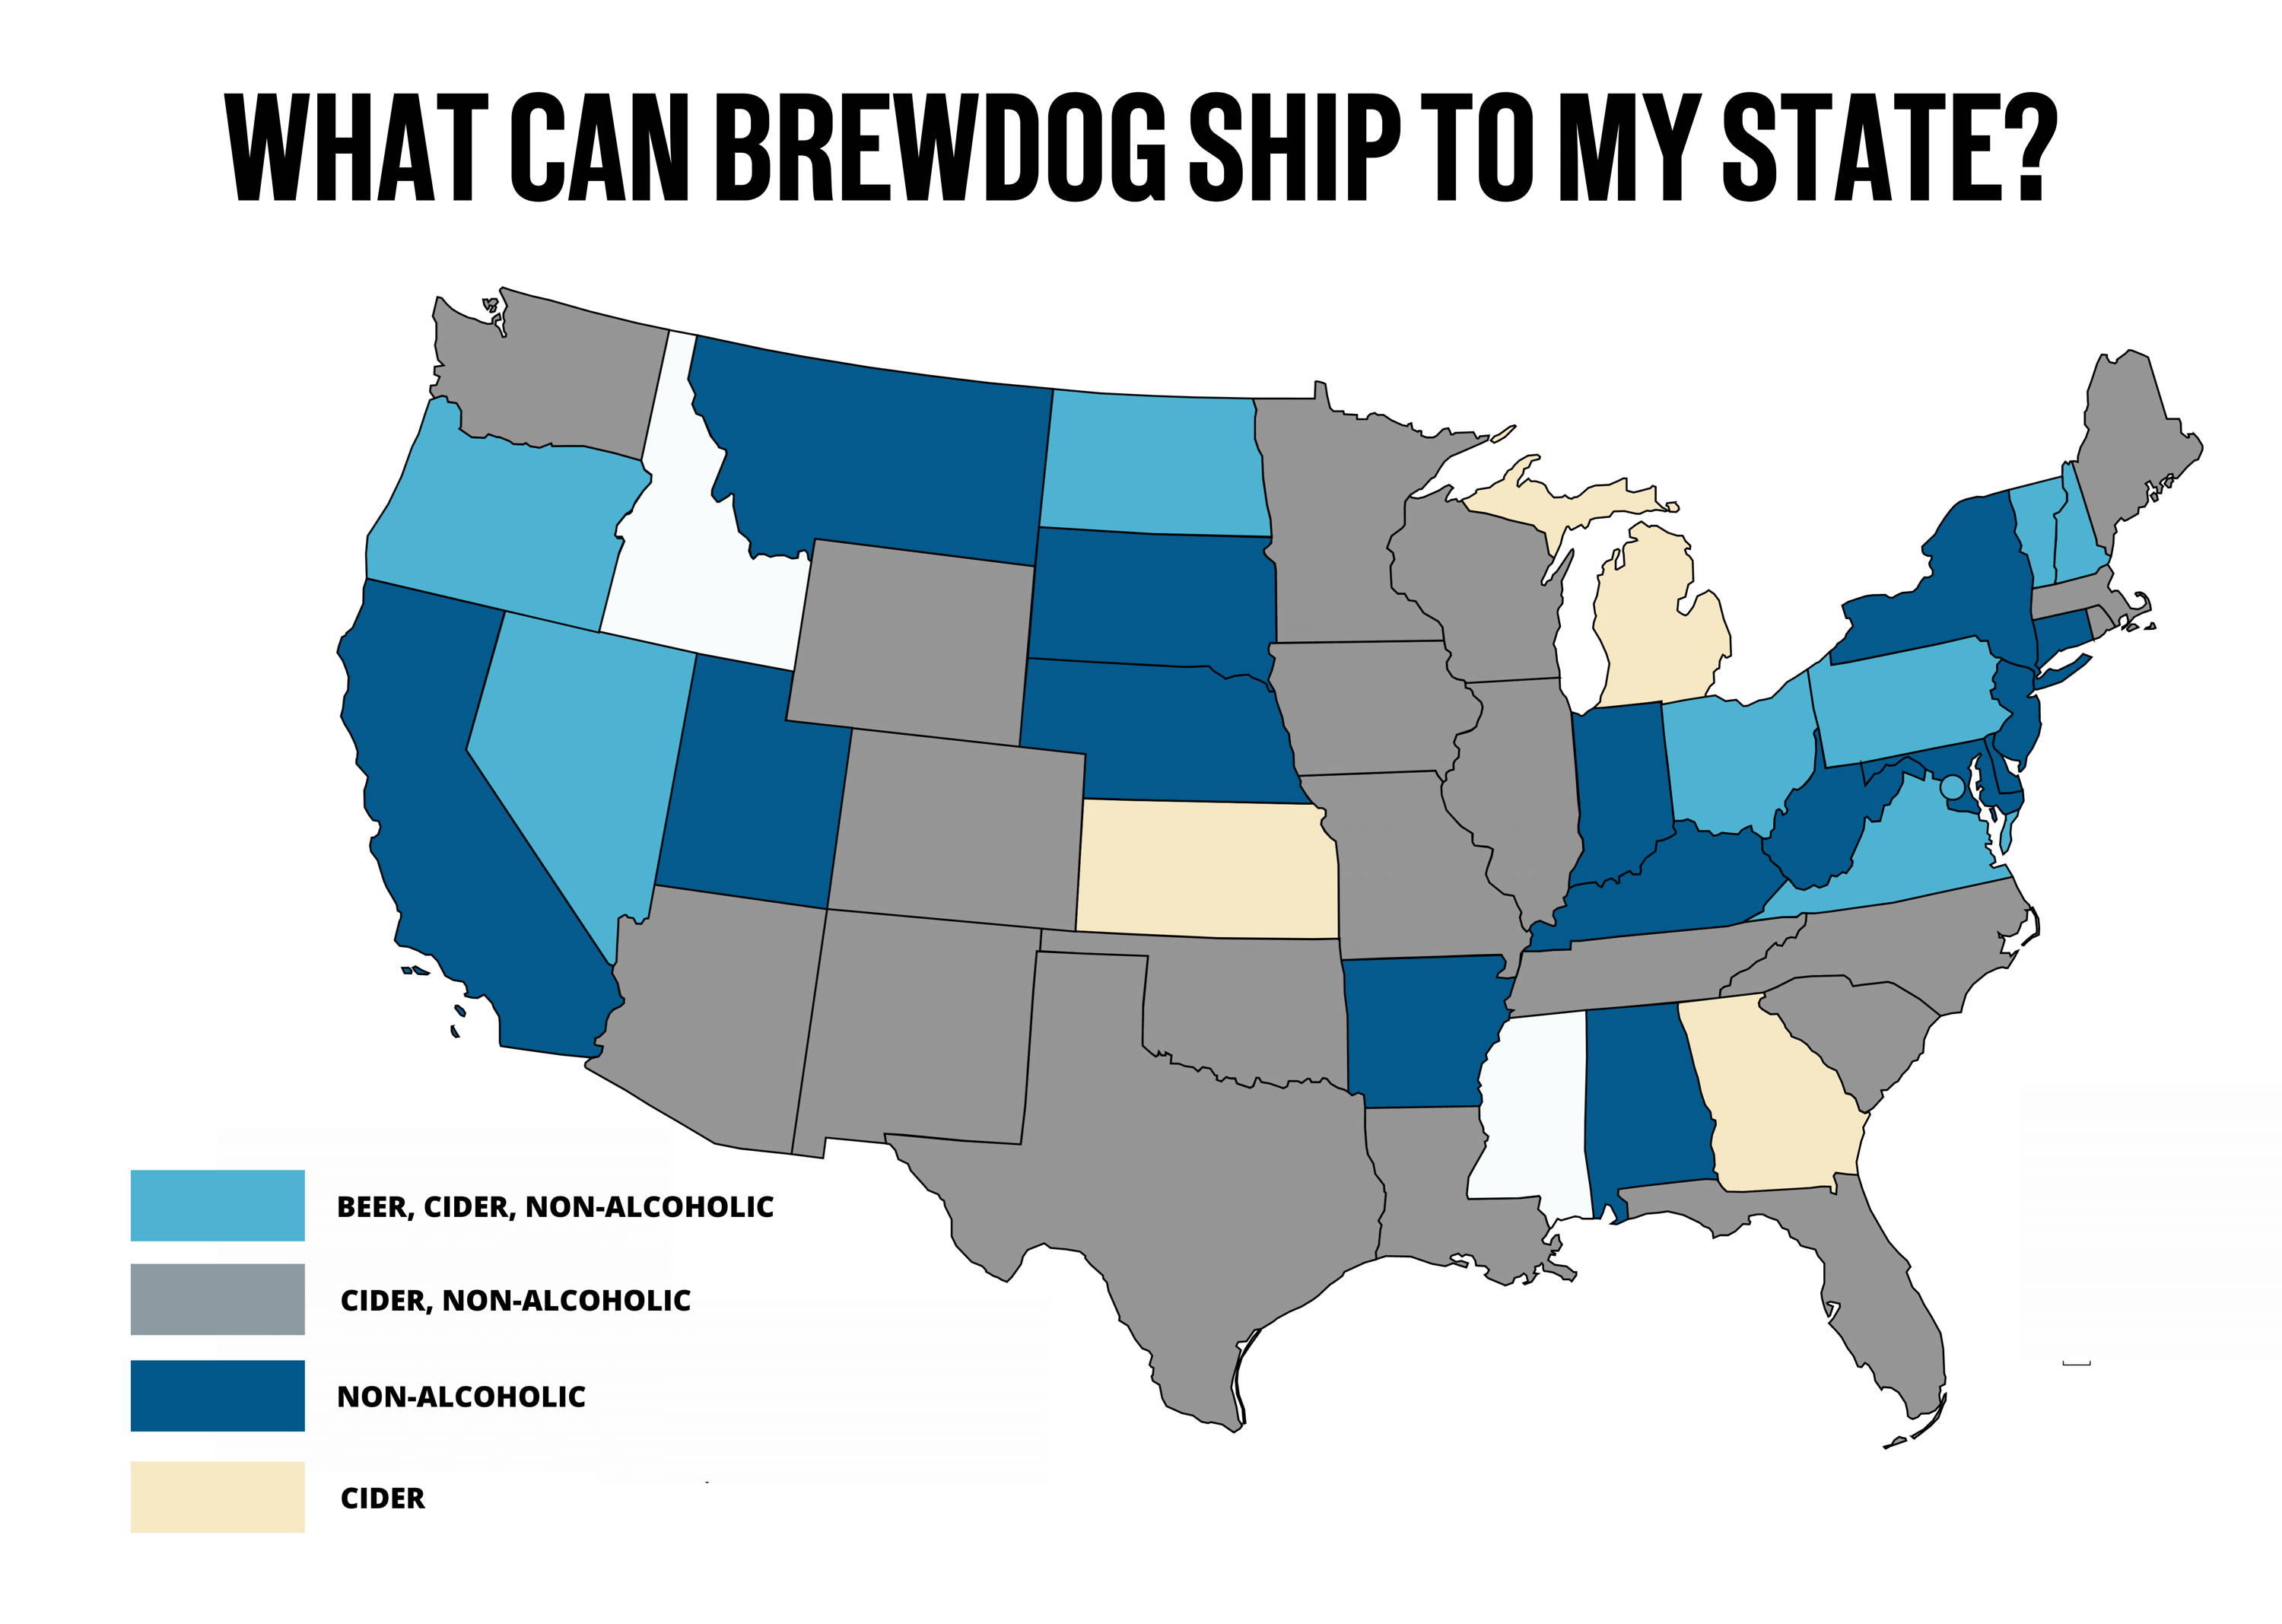 What can brewdog ship to my state?